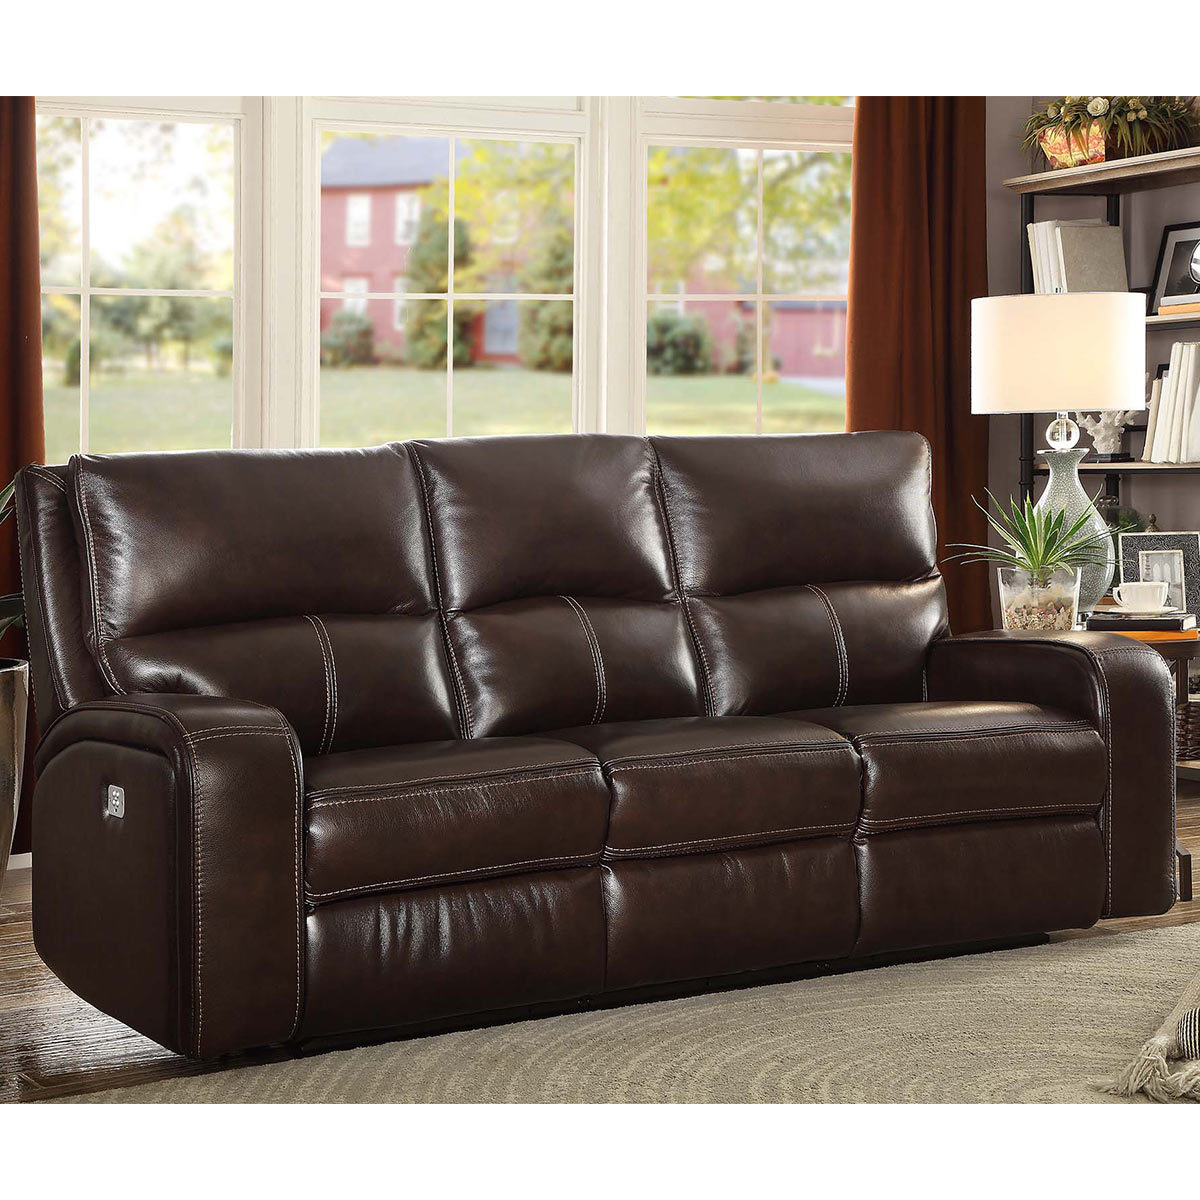 Zach 3 Seater Brown Leather Power Recliner Sofa Costco Uk